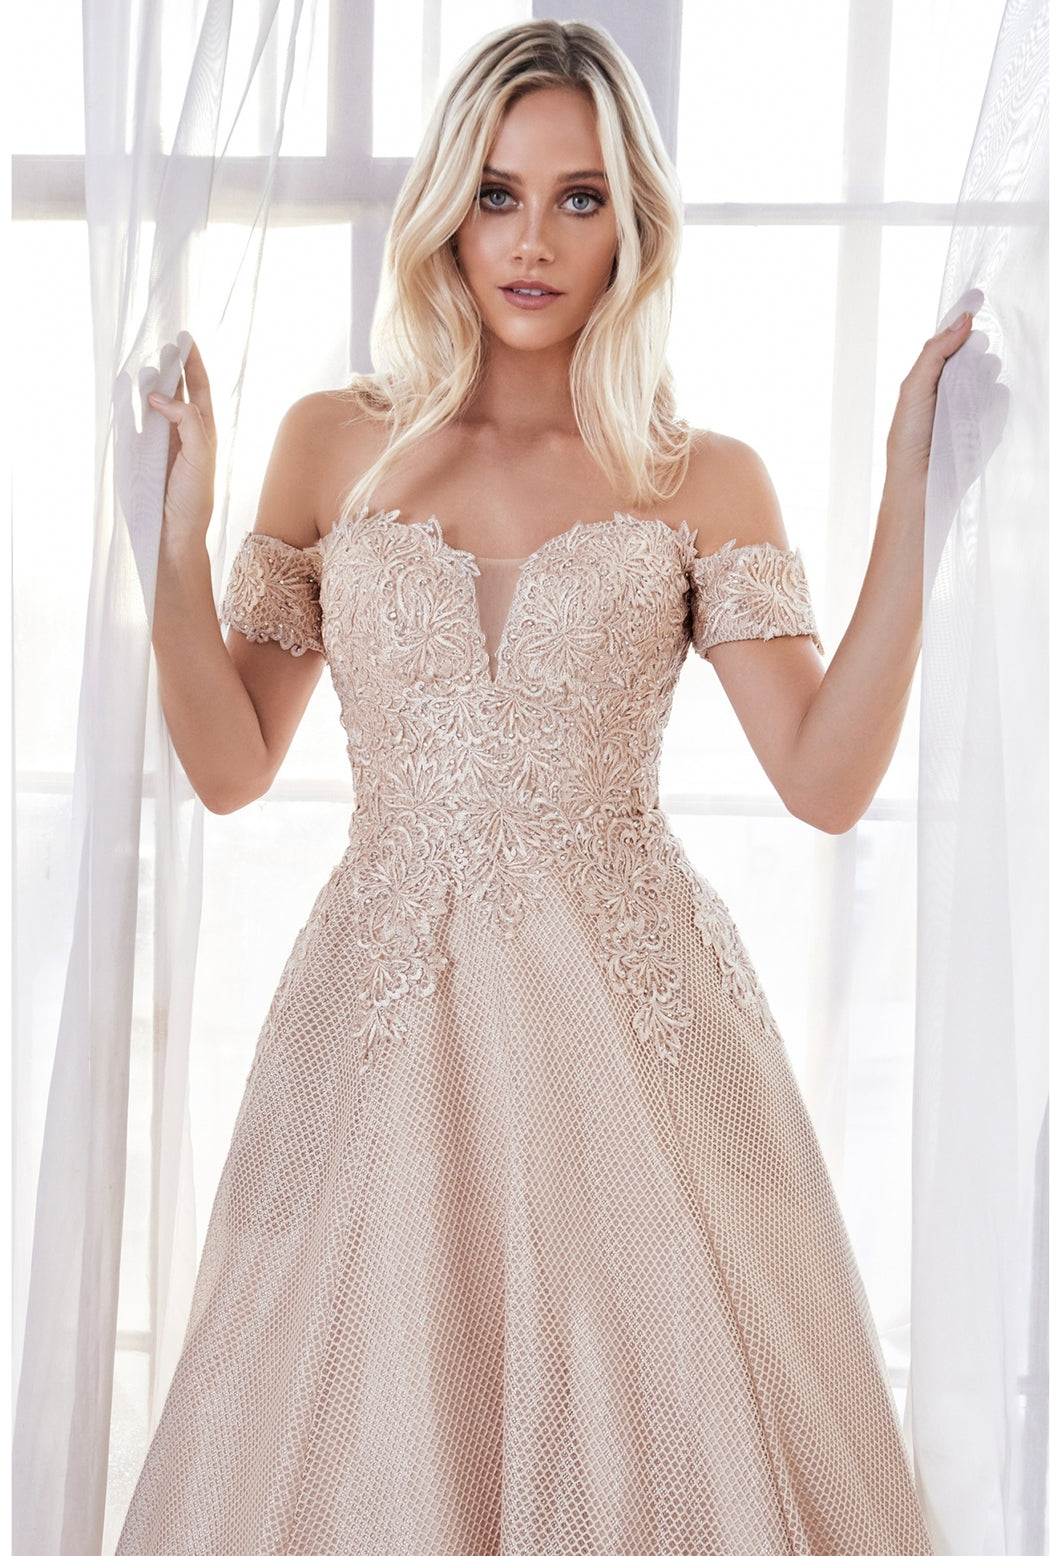 Cinderella Divine Chart I CD CD908 - Off the shoulder Ballgown with Lace Applique Bodice & Netted Skirt - Diggz Prom